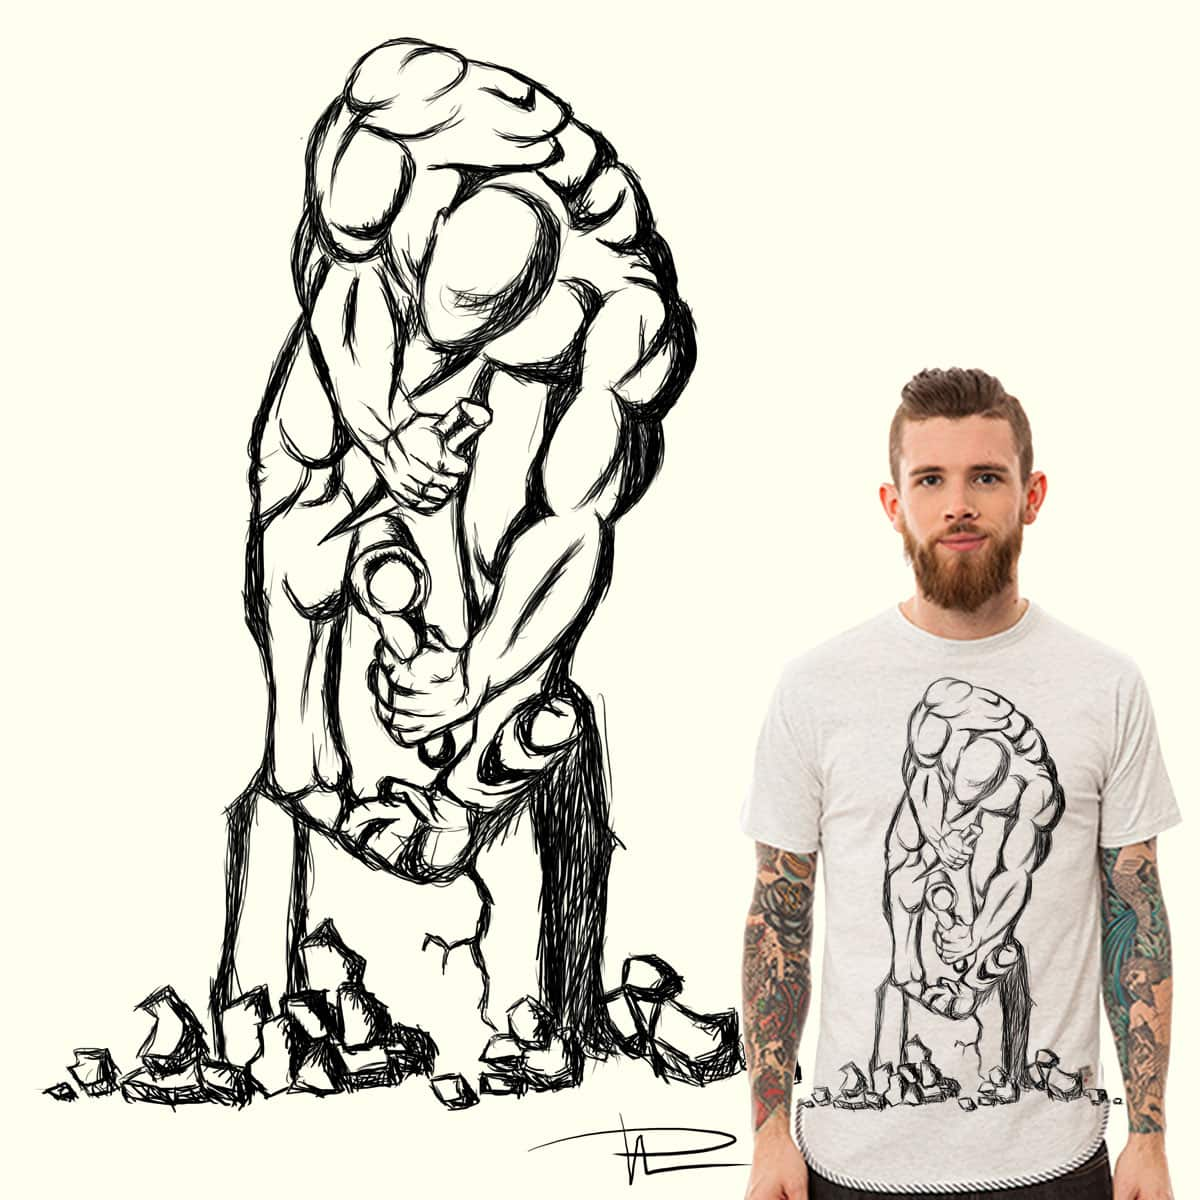 the builder by audirein on Threadless